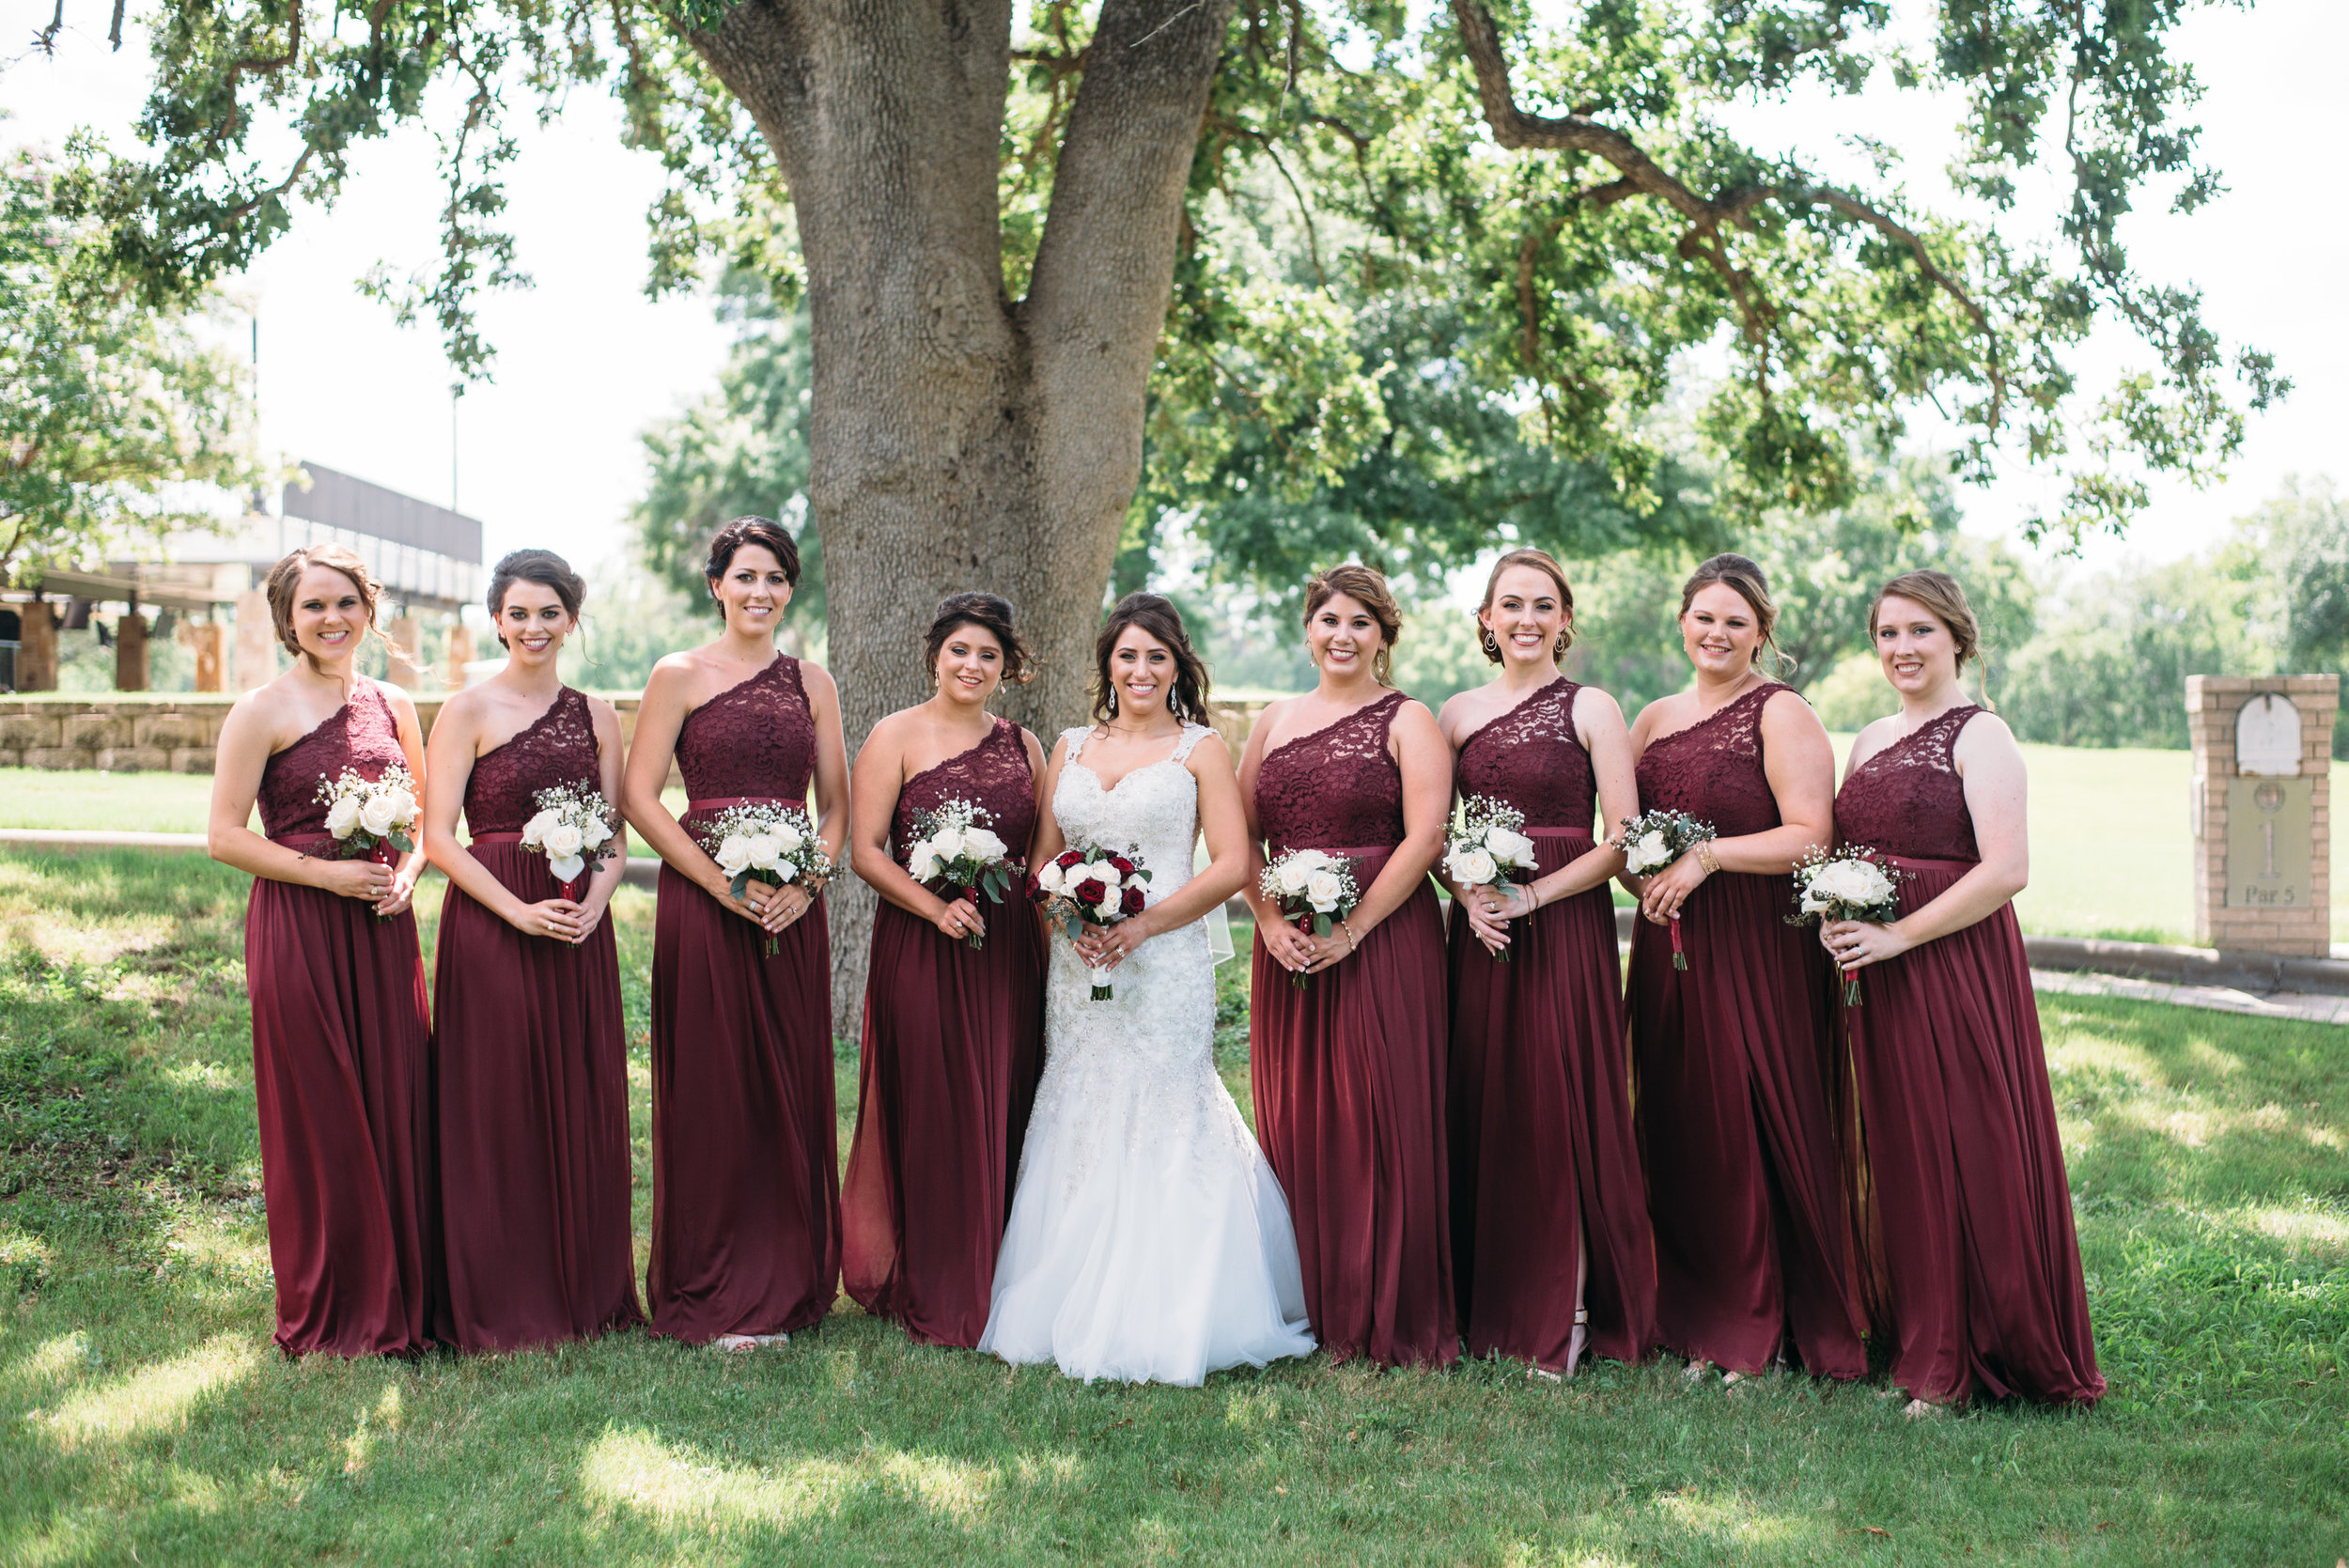 PhillipsEventCenter-AggieWedding-CollegeStationPhotographer_19.jpg